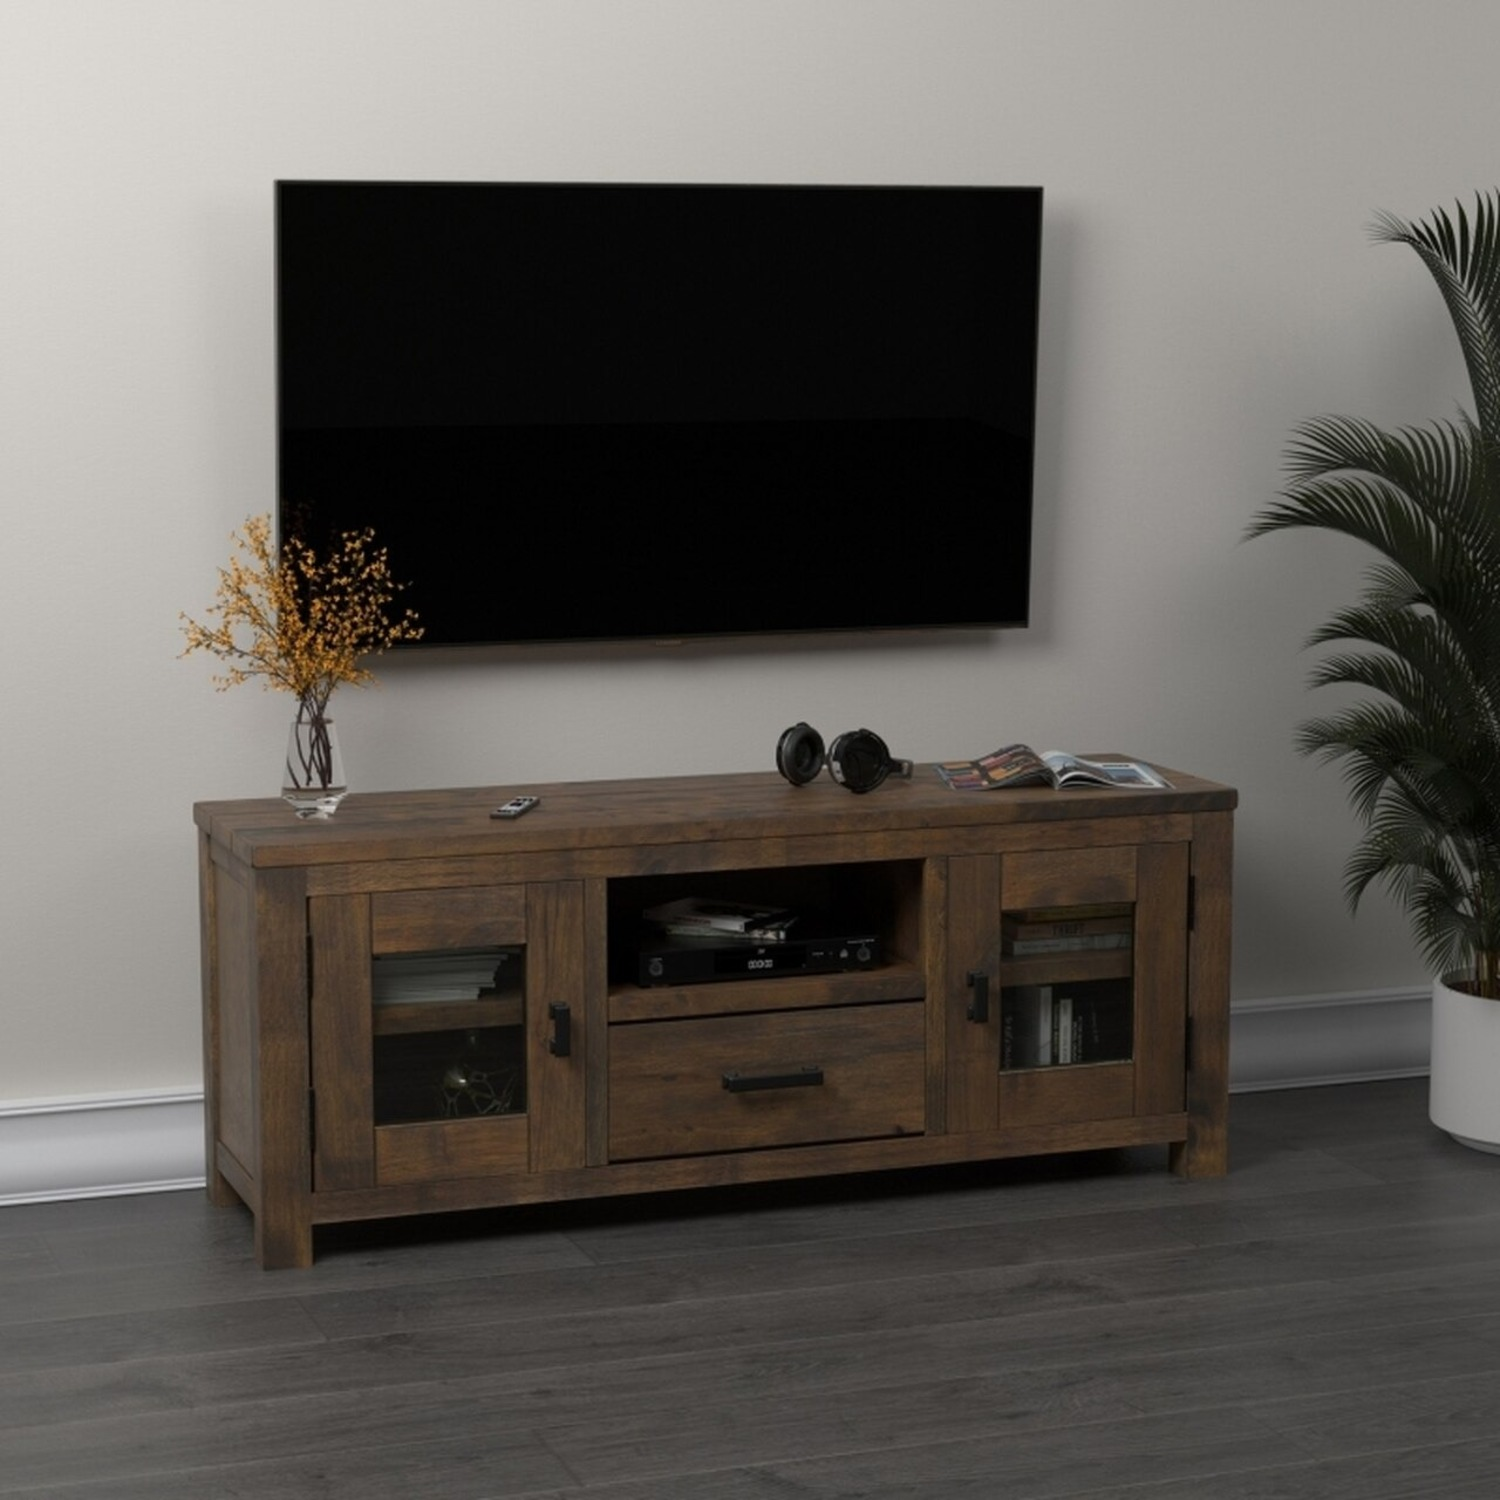 75-Inch TV Console In Rustic Golden Brown - image-2